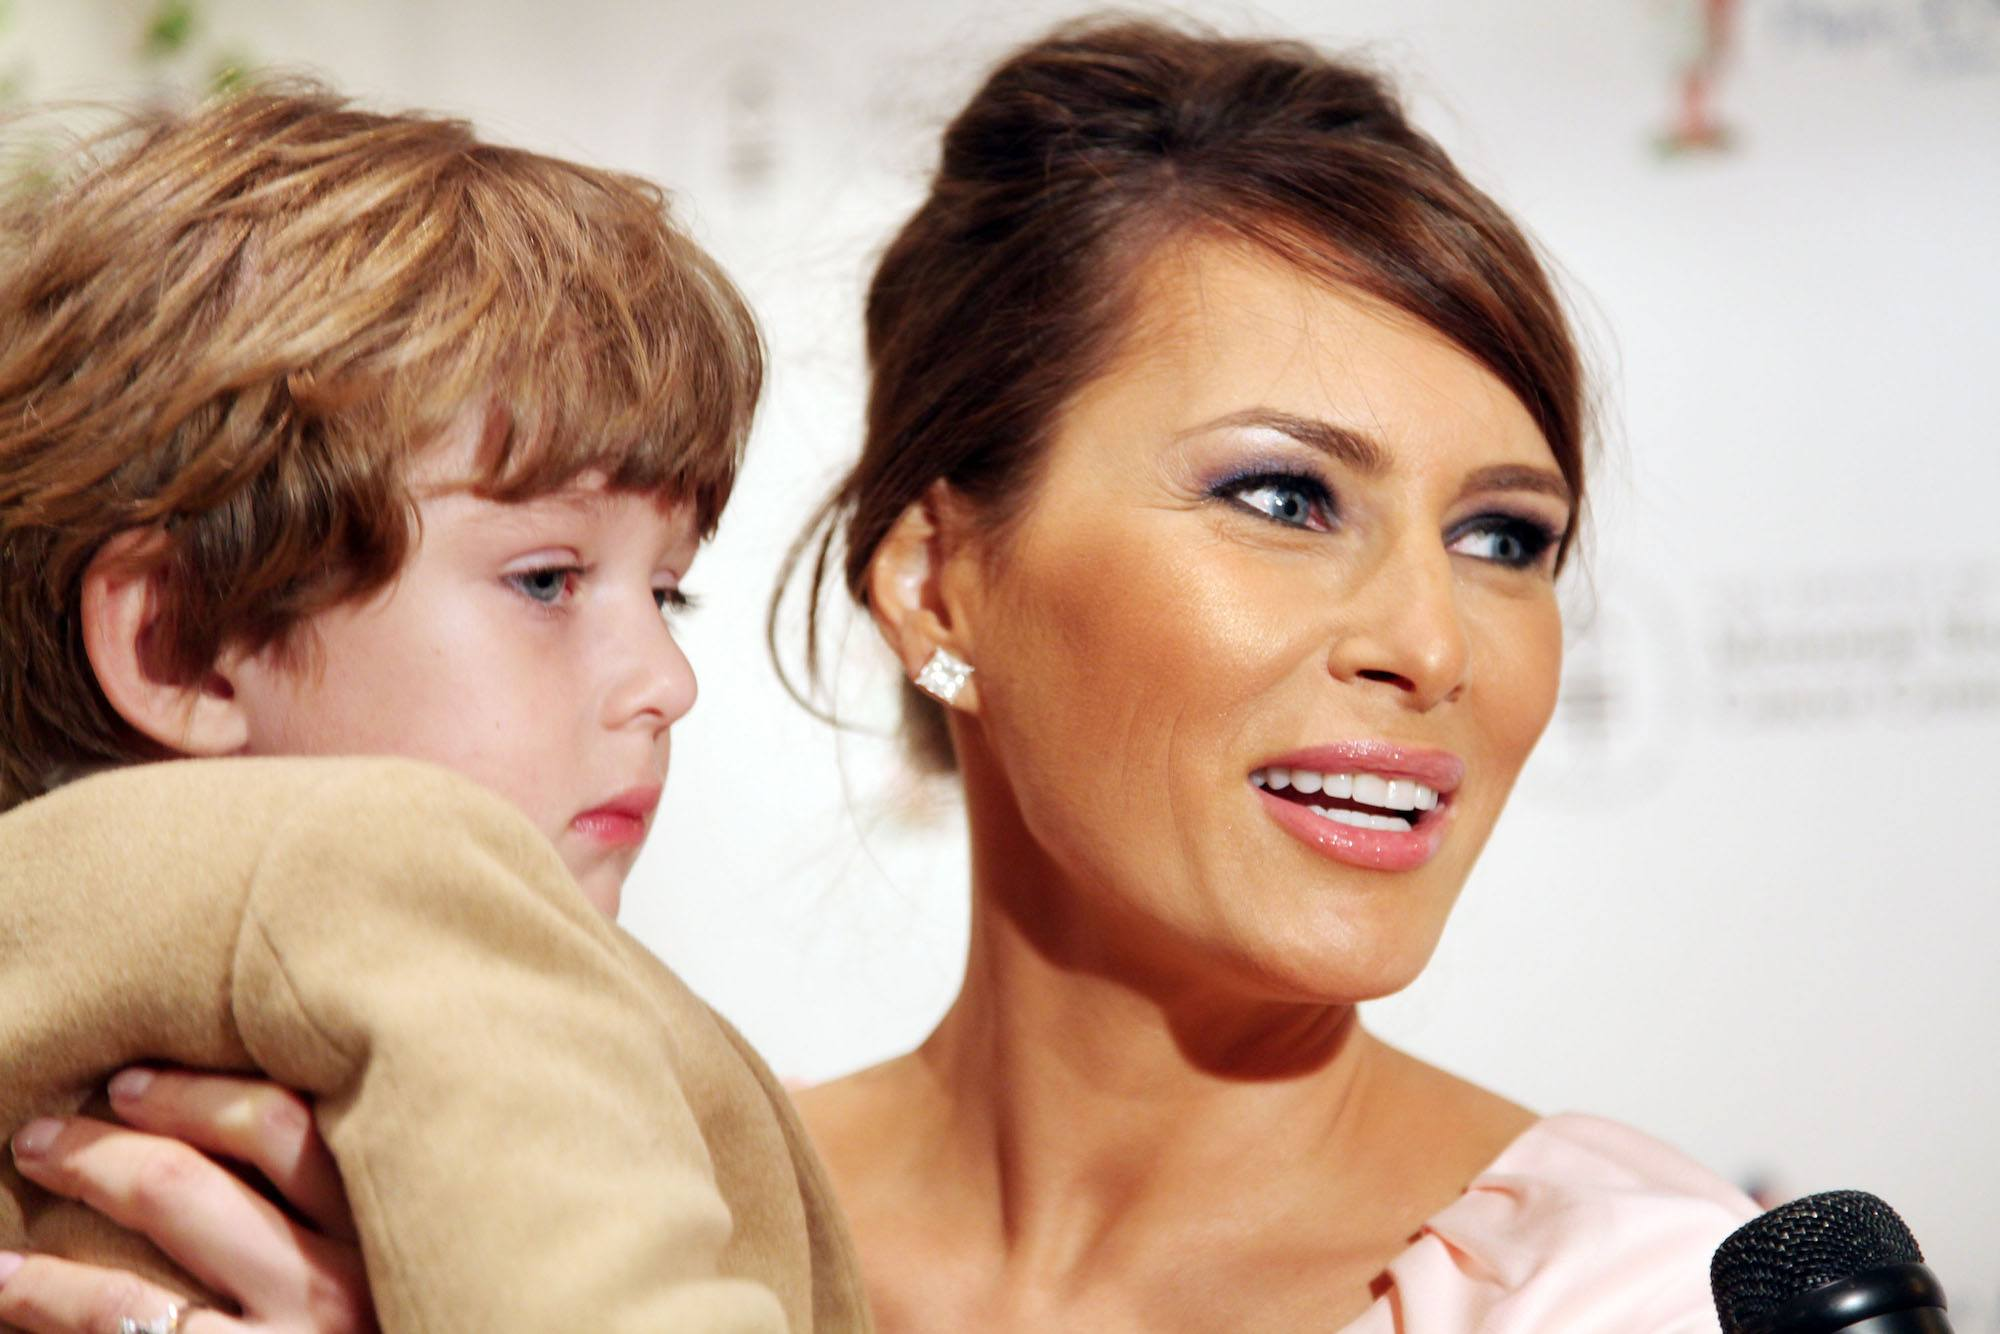 Barron Trump and Melania Trump attend the 18th annual Bunny Hop in 2009